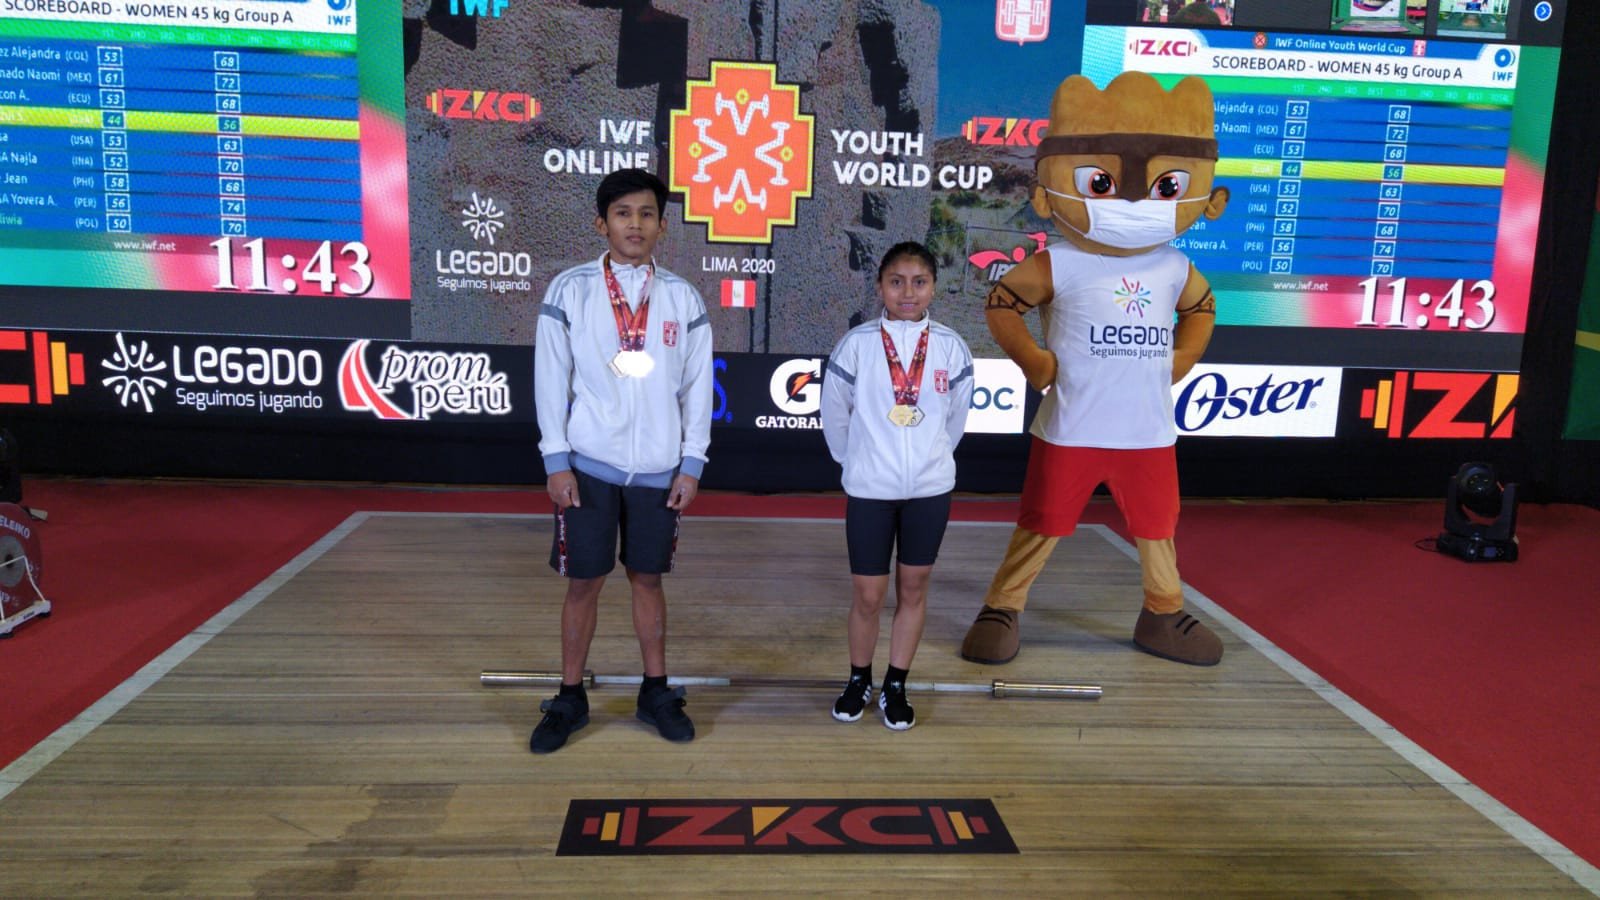 Organisers Peru top medal table on day one of IWF Online Youth World Cup